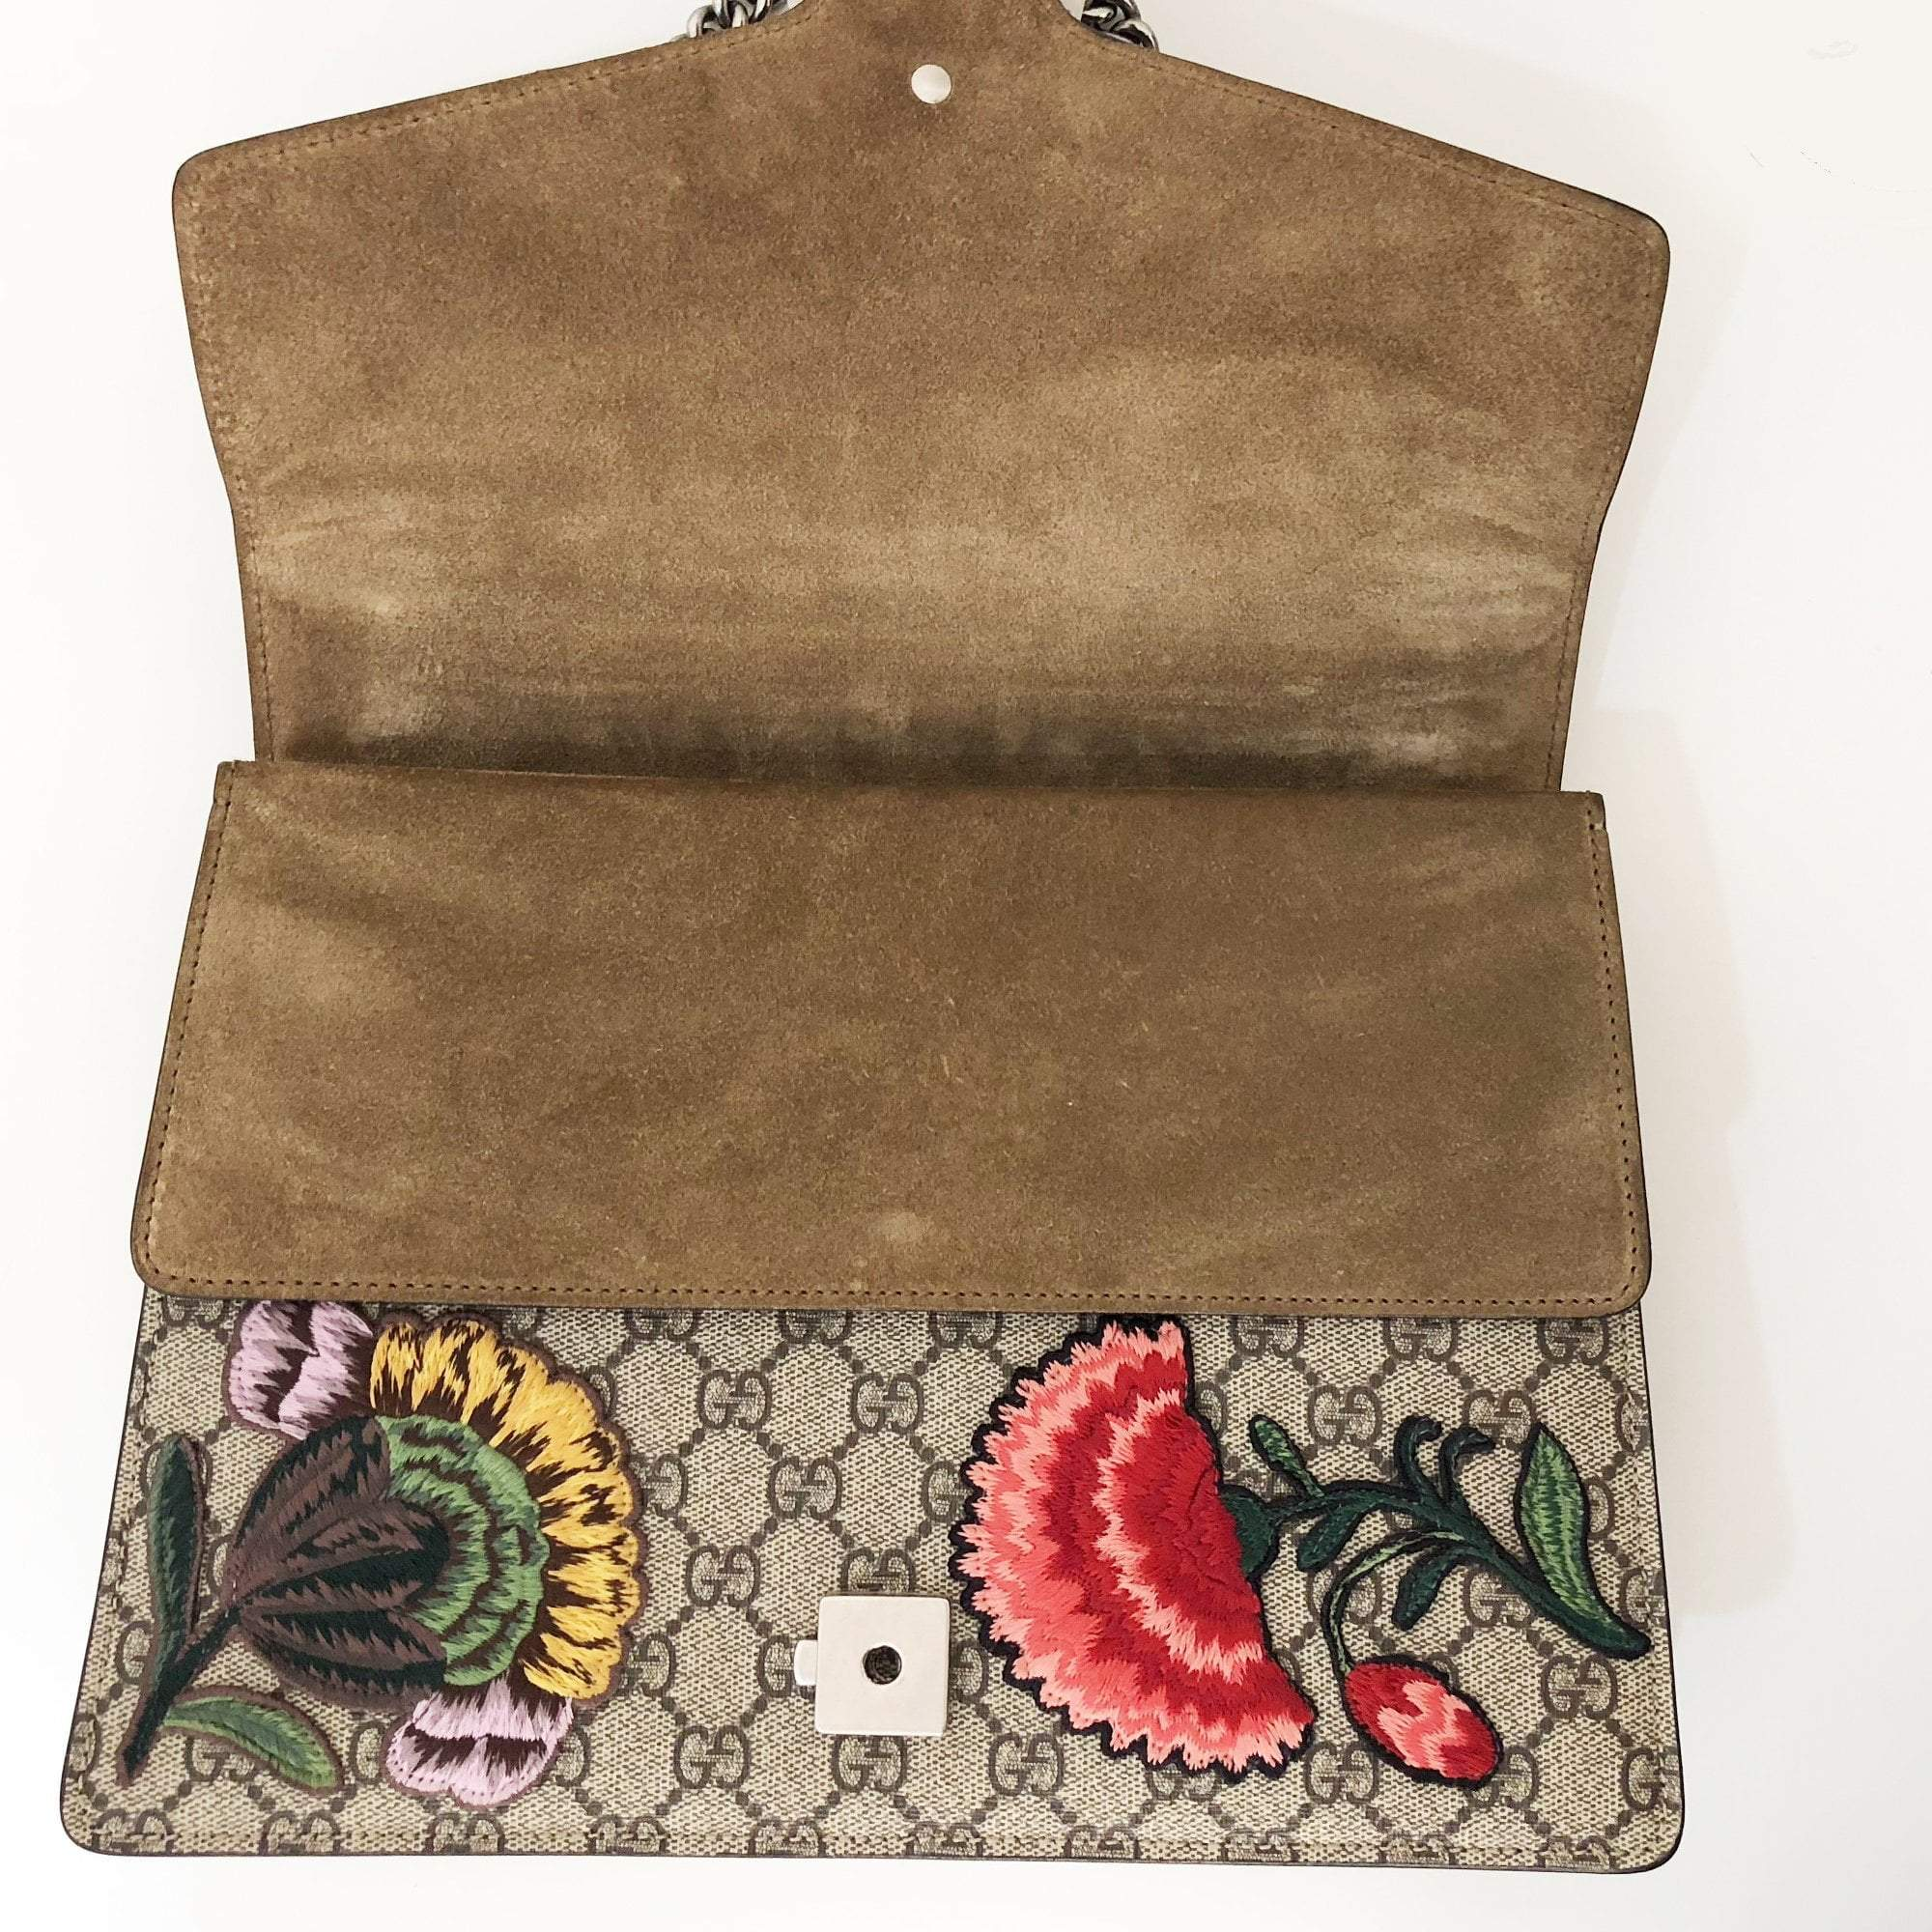 Gucci Dionysus Medium GG Flower Applique Shoulder Bag